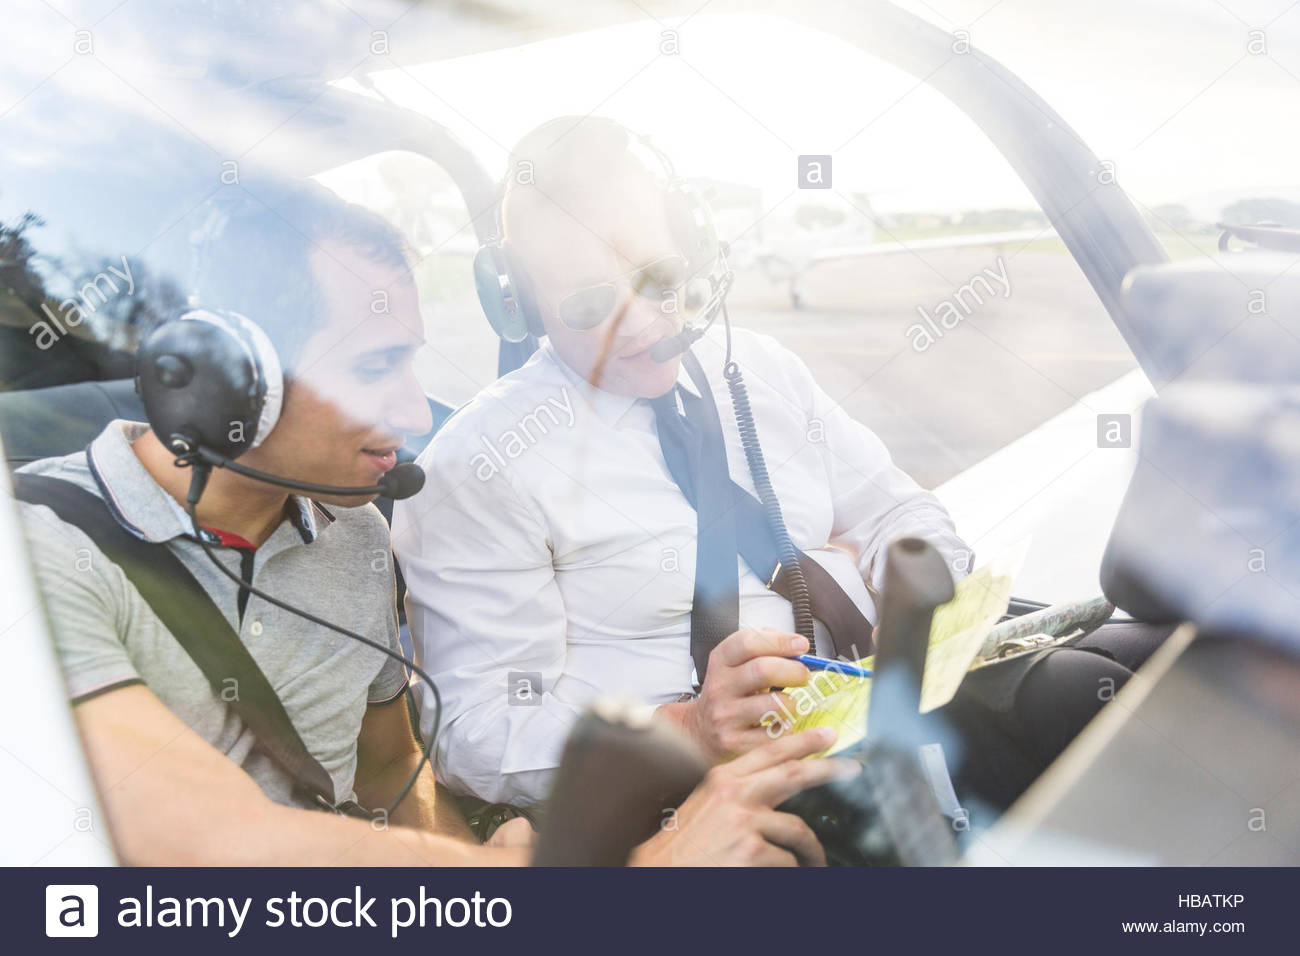 Pilot and co-pilot sitting in aircraft, talking through flight plan - Stock Image